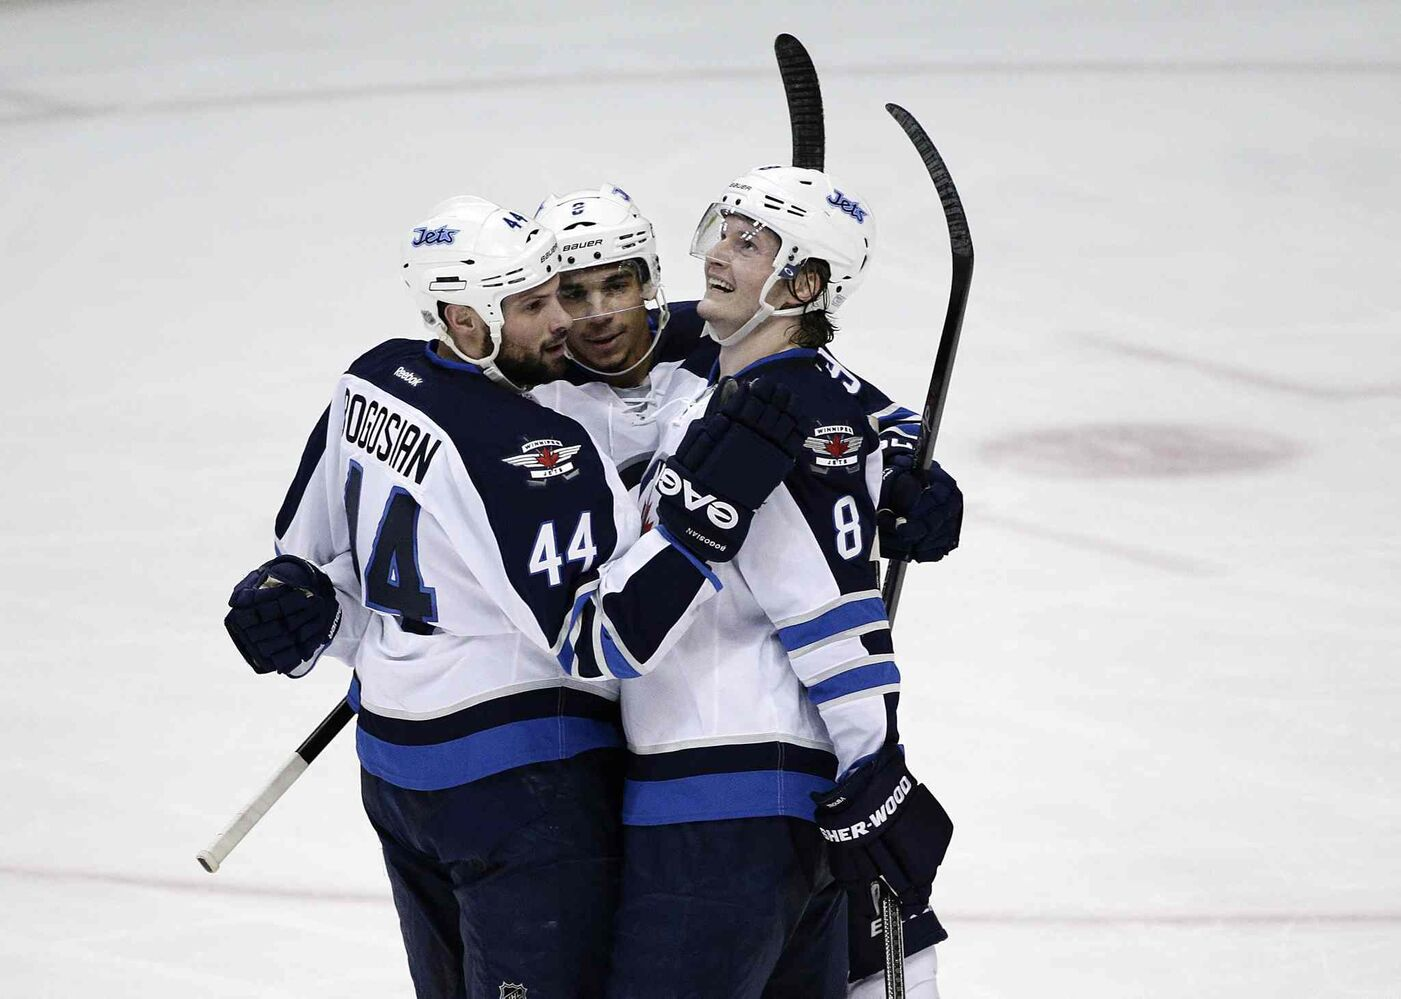 Winnipeg Jets' Evander Kane, center, celebrates his goal with Zach Bogosian, left, and Jacob Trouba during second period of Tuesday's NHL game in Anaheim, Calif.